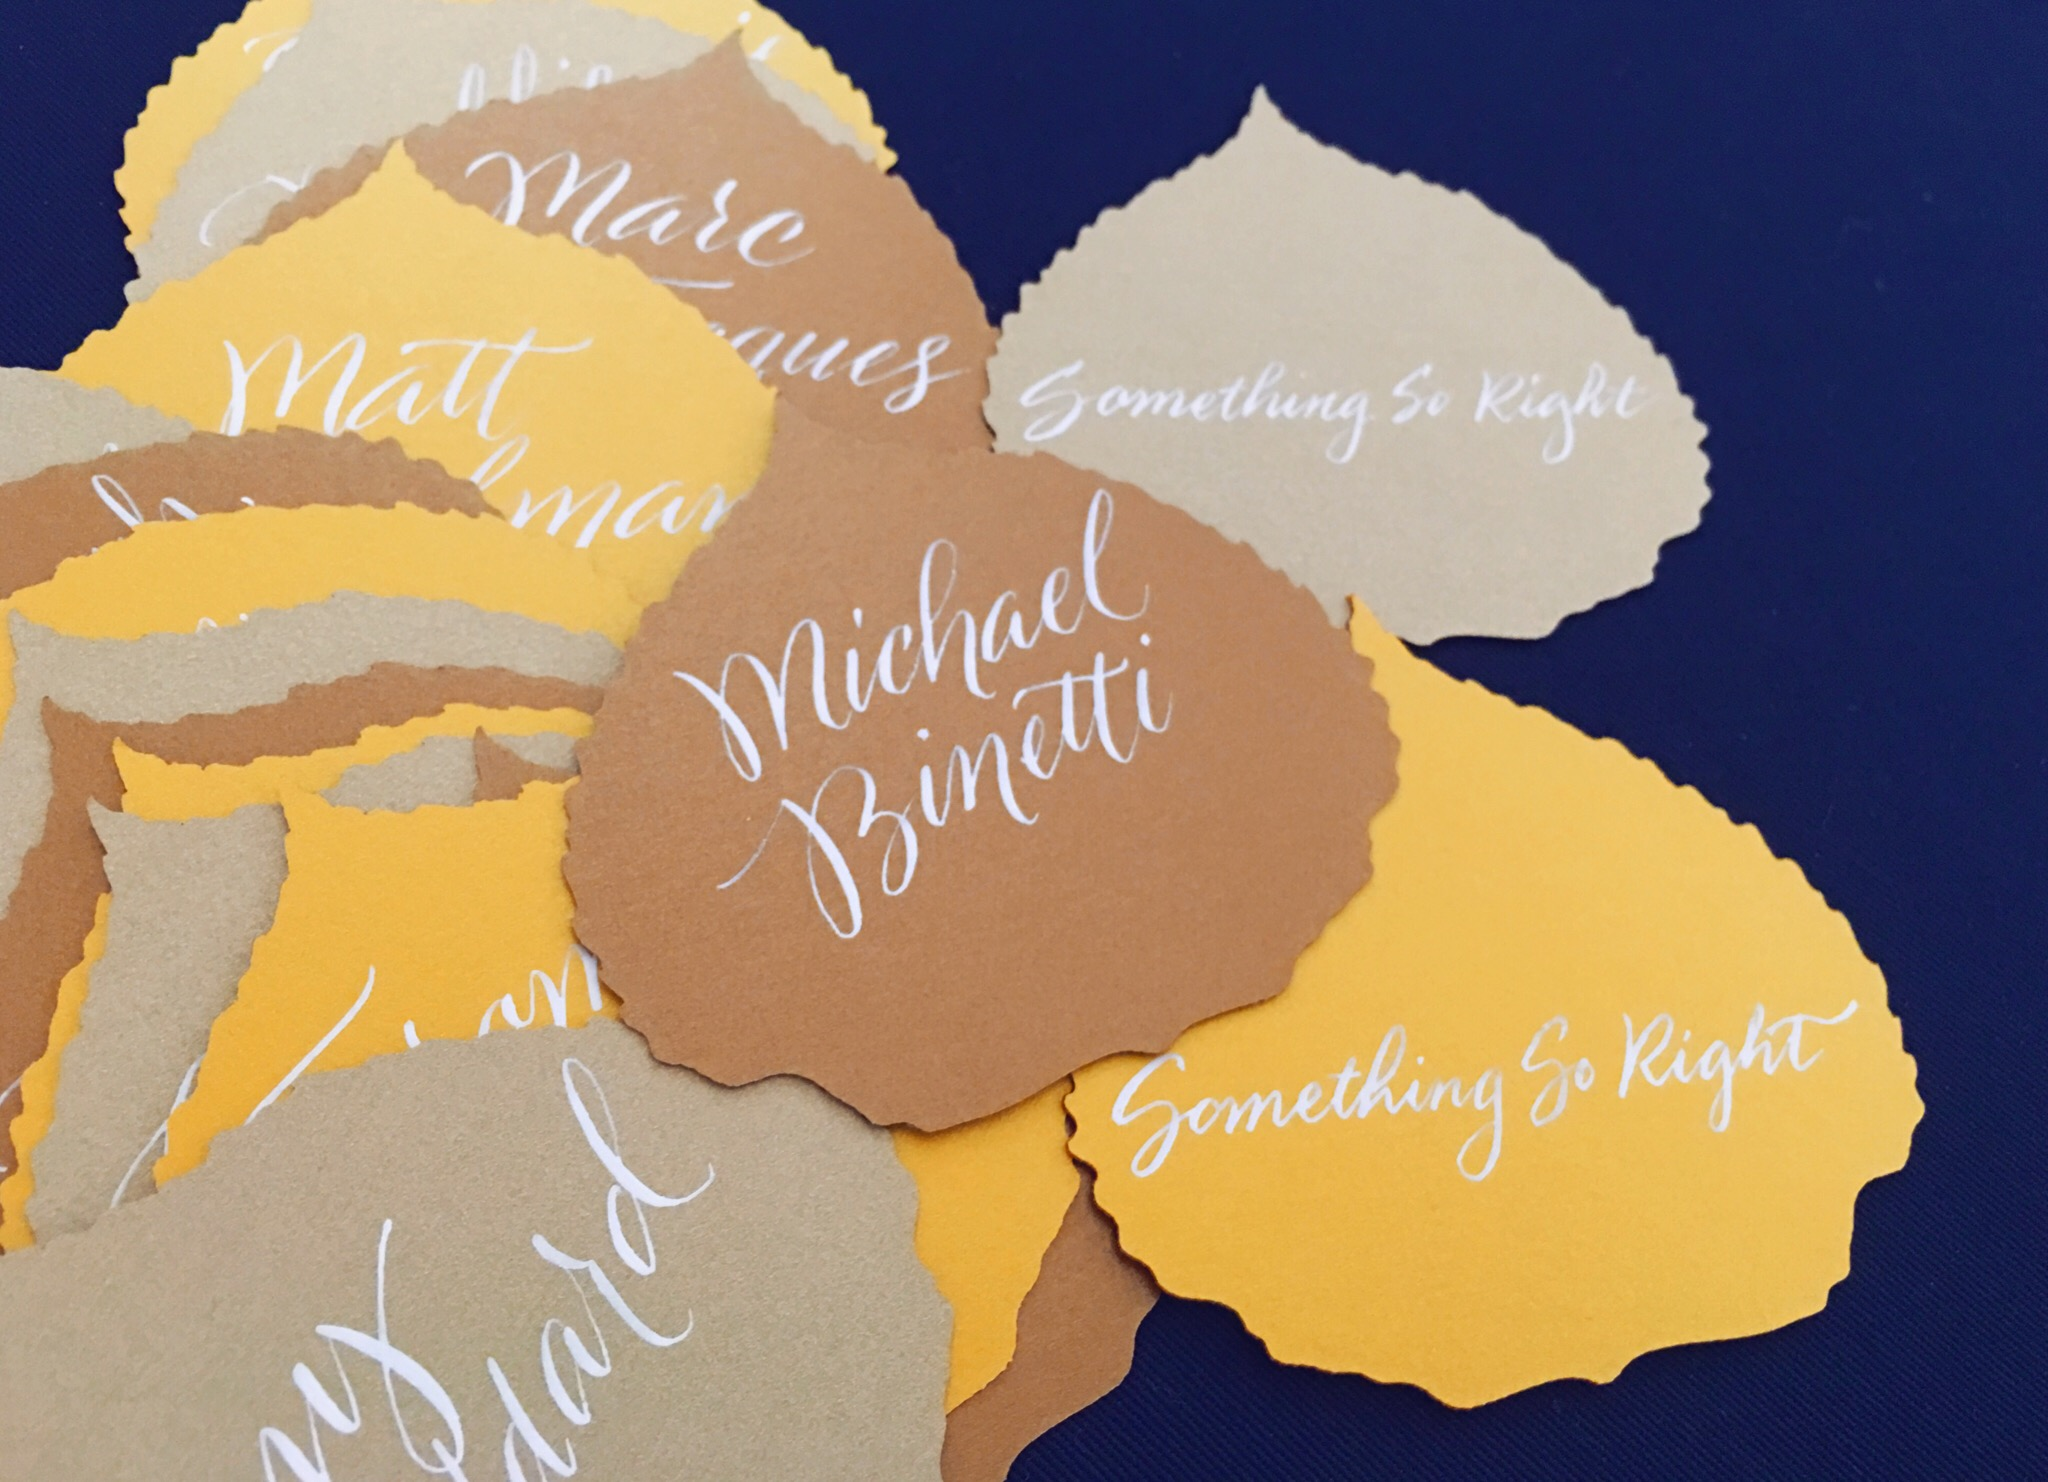 Custom laser-cut aspen leaf place cards for a wedding at The Little Nell in Aspen, Colorado // design and calligraphy by www.chavelli.com